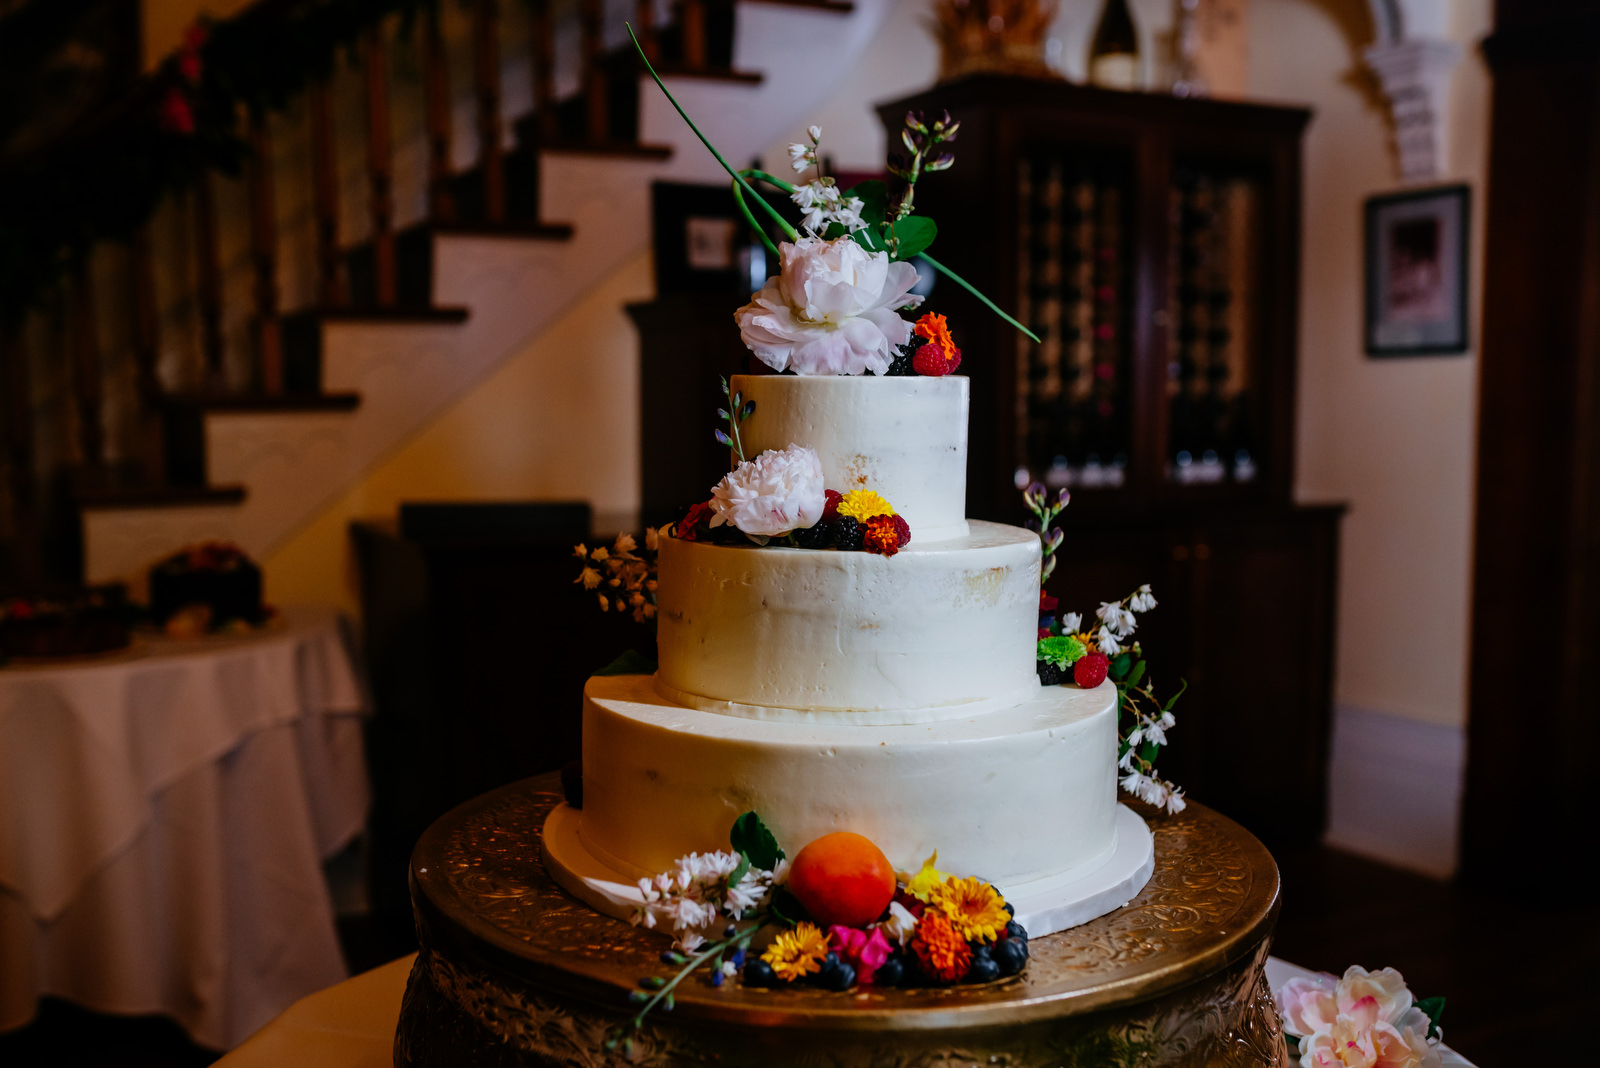 martines pastries cake holly hill inn wedding lexington ky